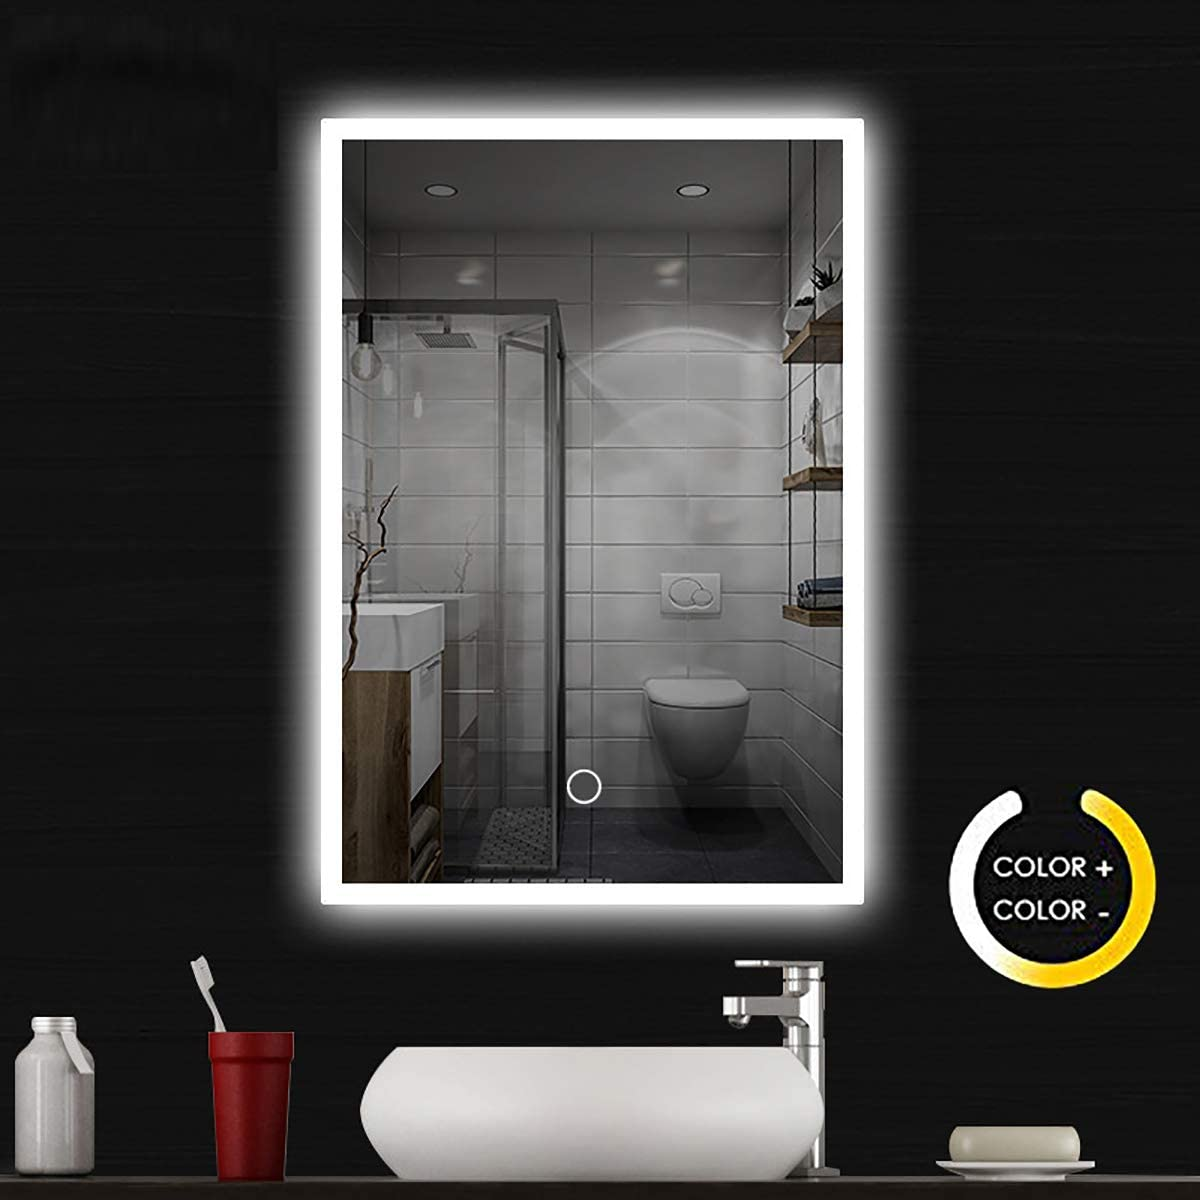 SYHsdzg Wall Mounted Bathroom Mirror,Large 32 Inch x 24 Inch LED Bathroom Mirror Silvered Anti-Fog Lighted Touch Makeup Vanity Mirror with 2 Colors Light Dimmer Wall Mounted Framless Vertical Horizon